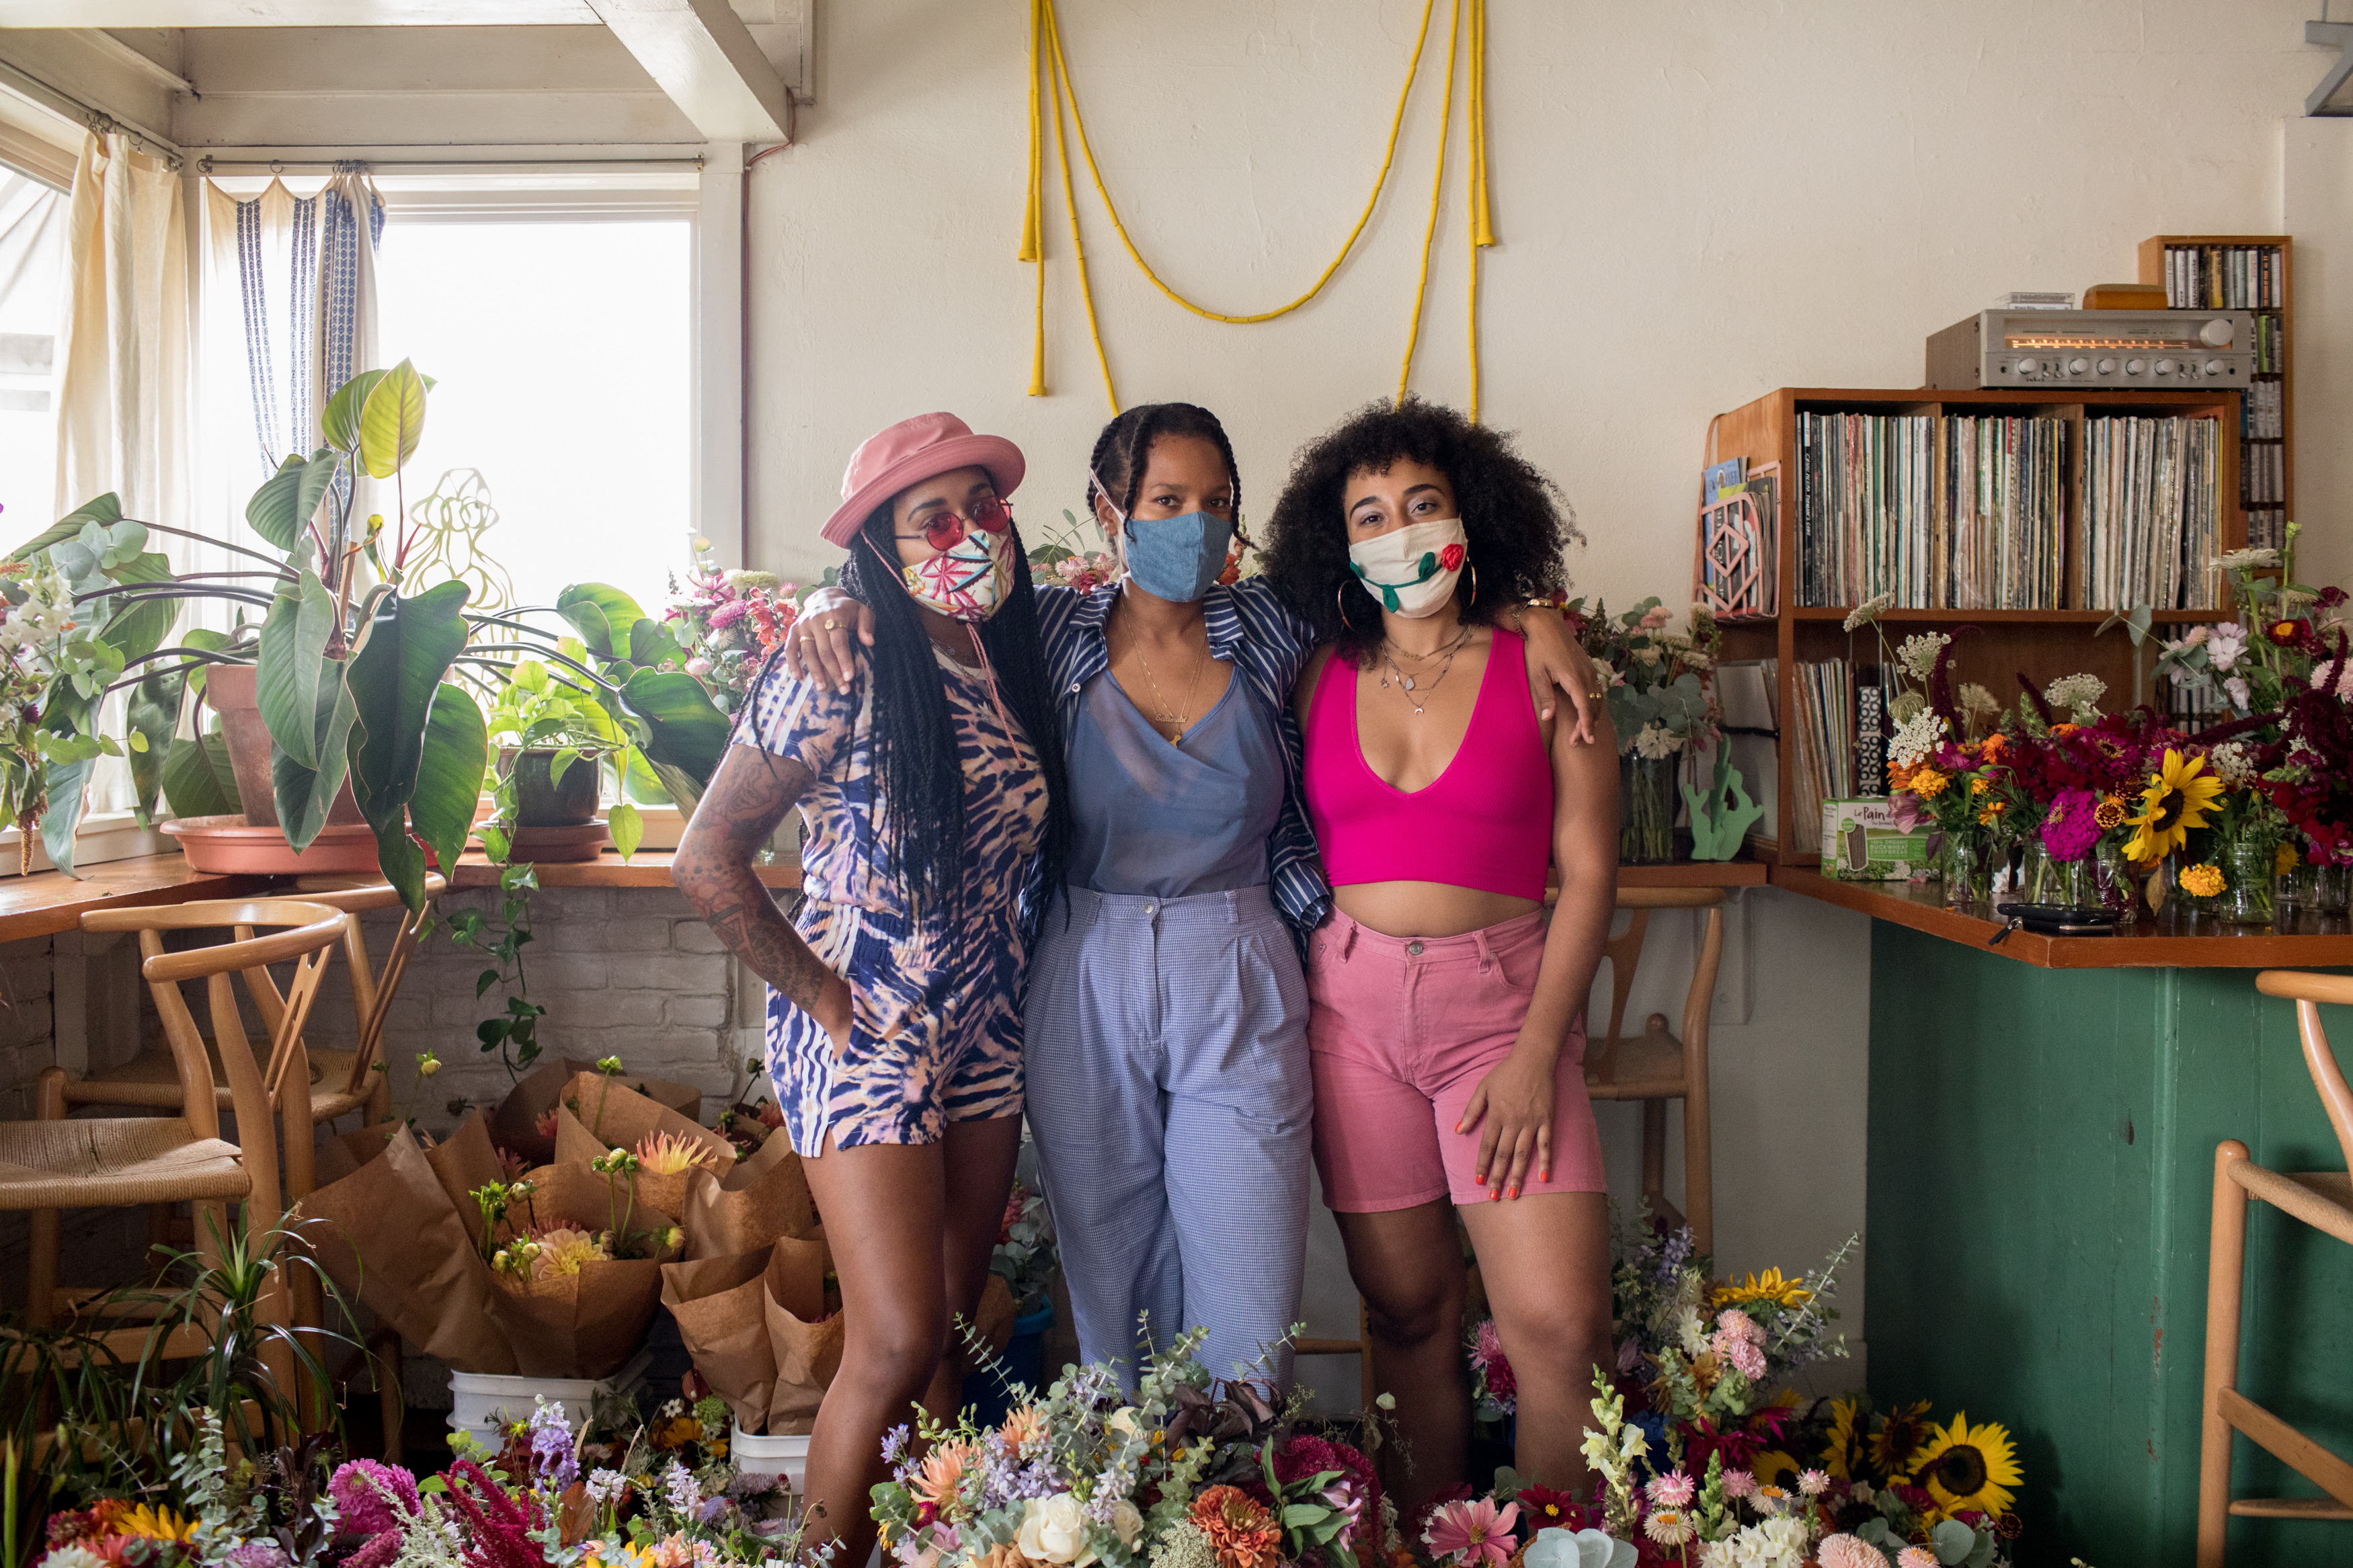 Two women, wearing masks, look ahead at the camera surrounded by flowers all over the floor and nearby counter.